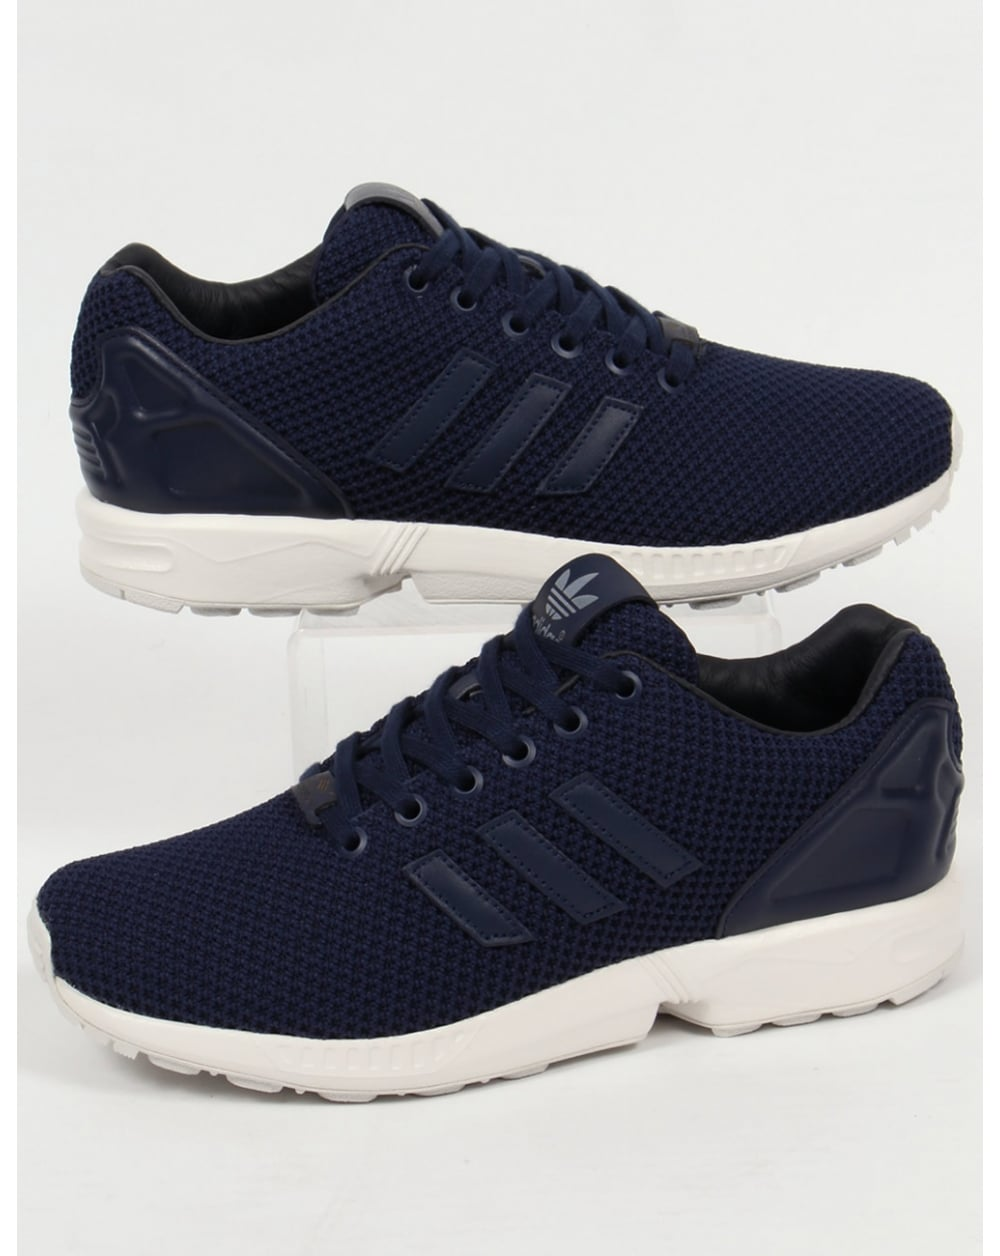 info for 9e8f8 e86ab Adidas ZX Flux Trainers Navy/Navy/White